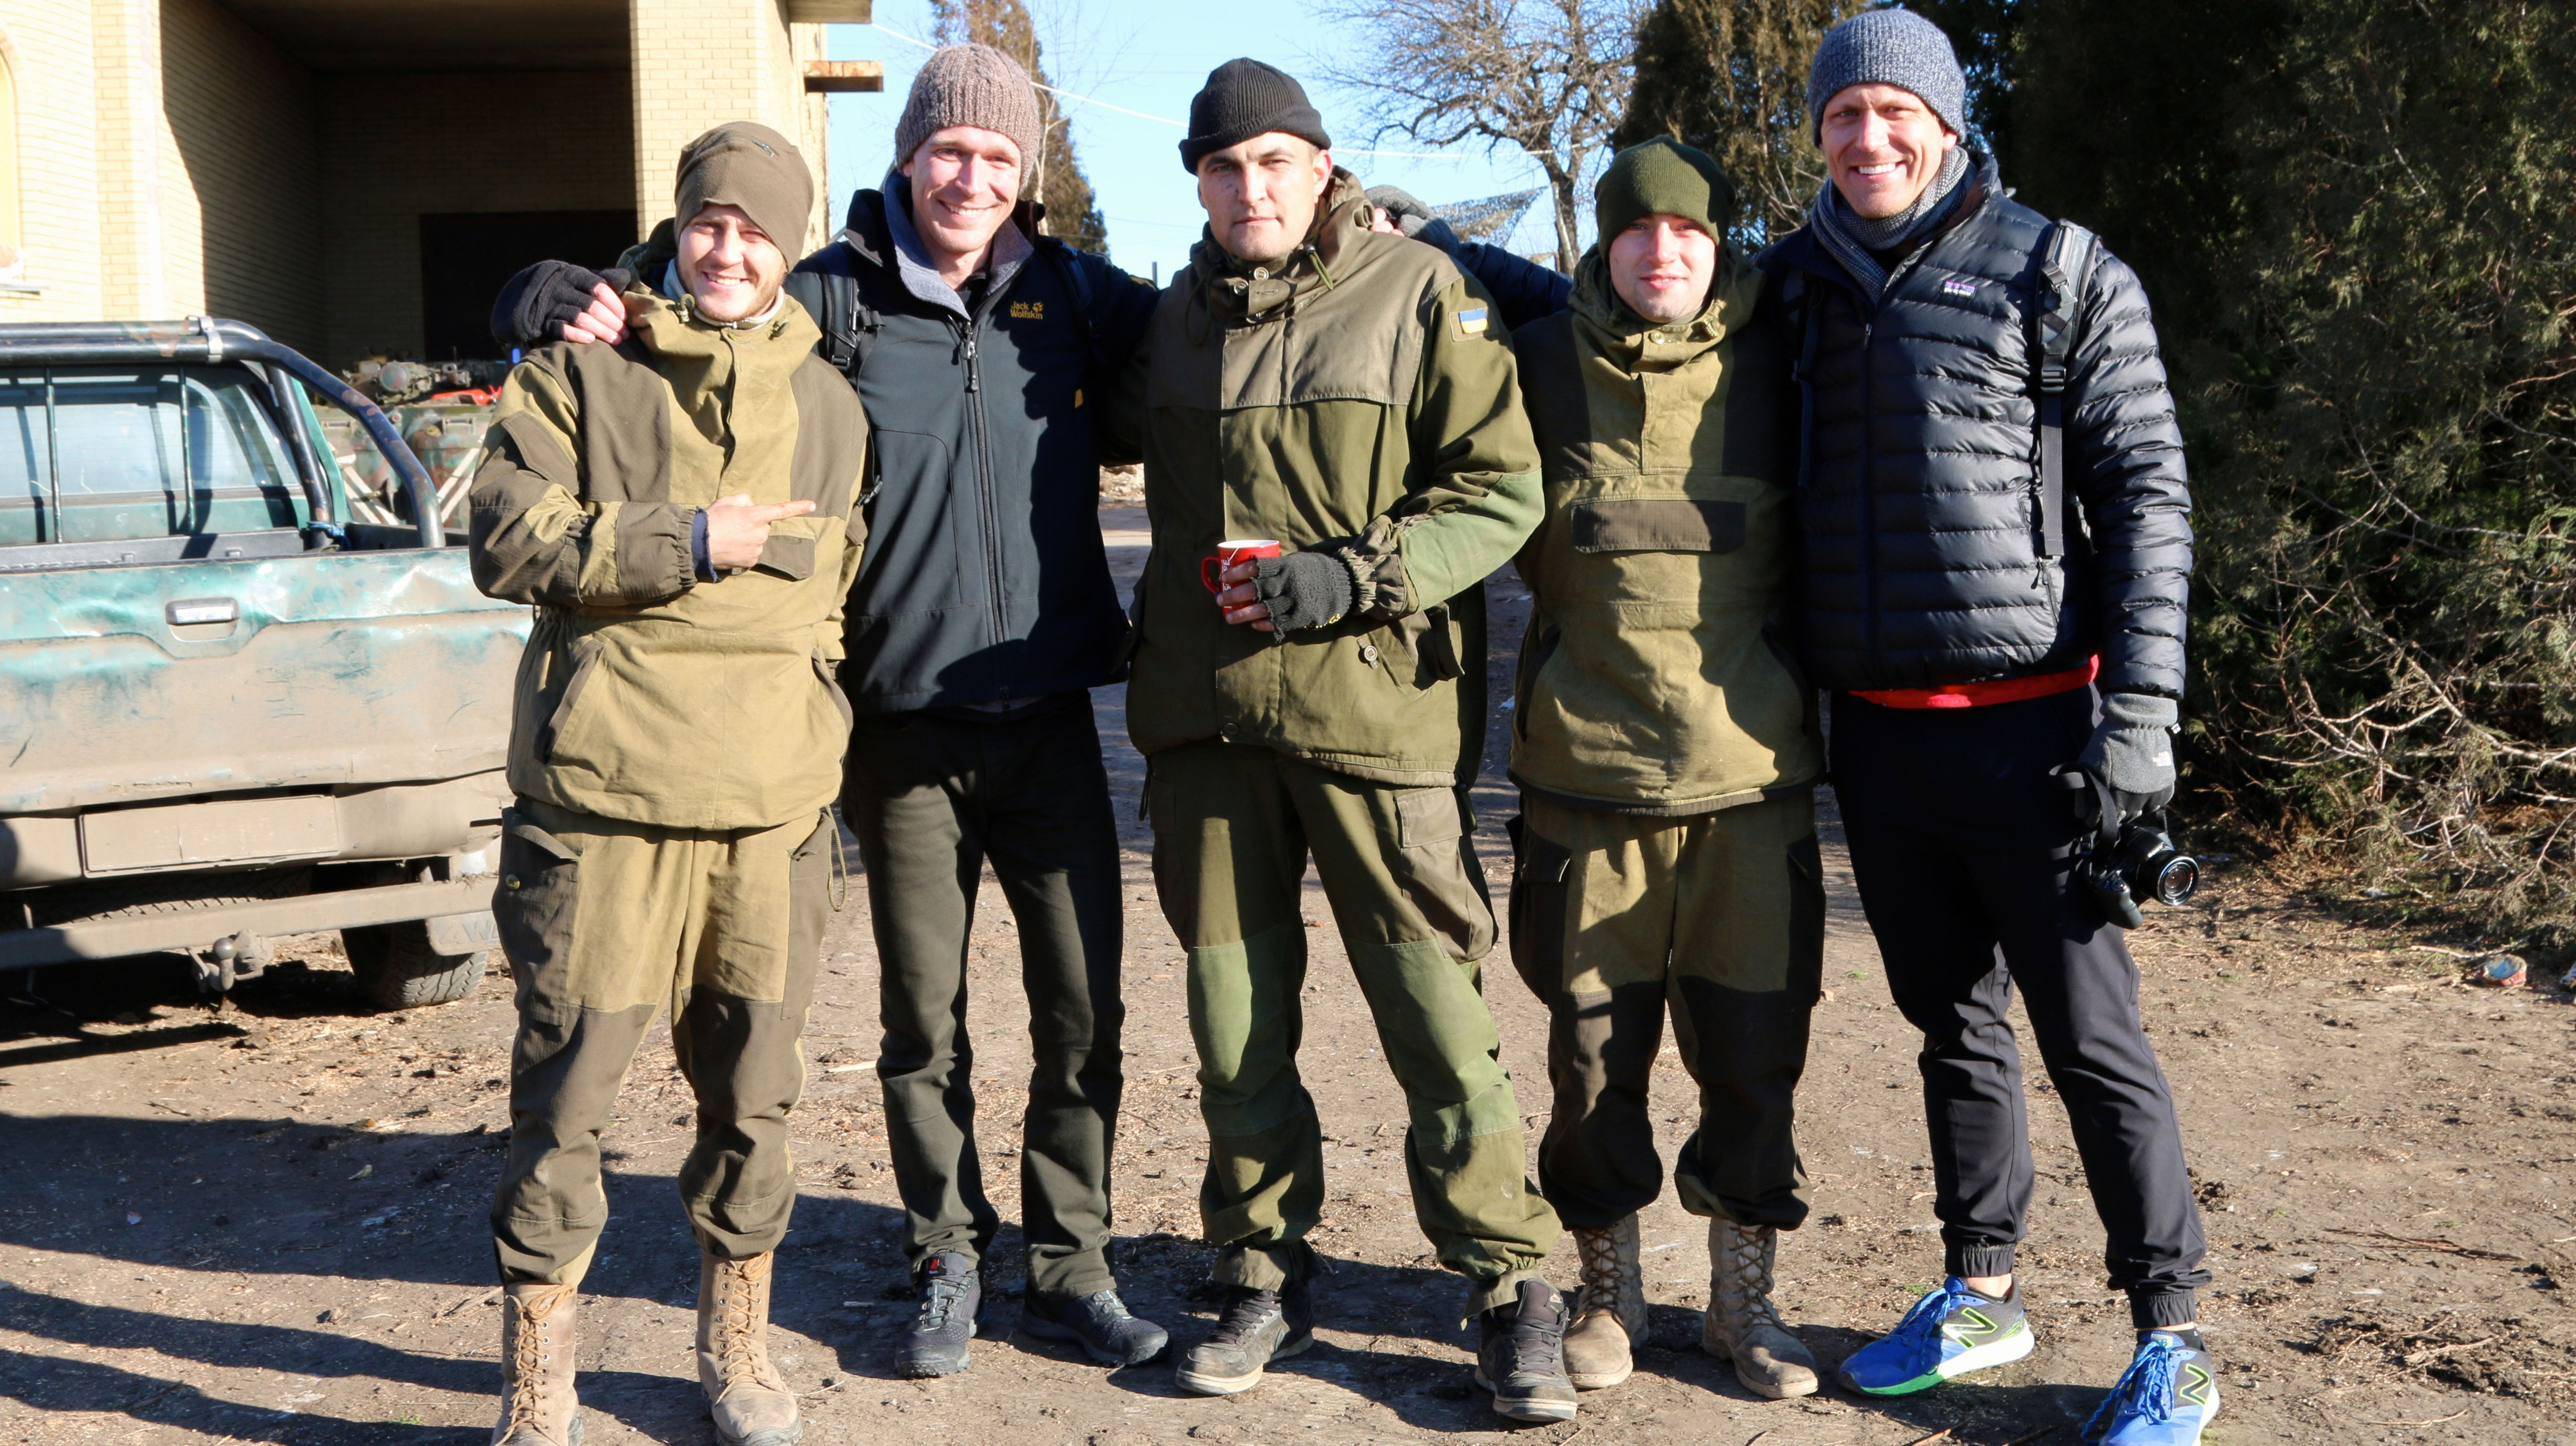 (0566) The author and his brother with Ukrainian soldiers in Marinka. (Photo: Nolan Peterson/The Daily Signal)